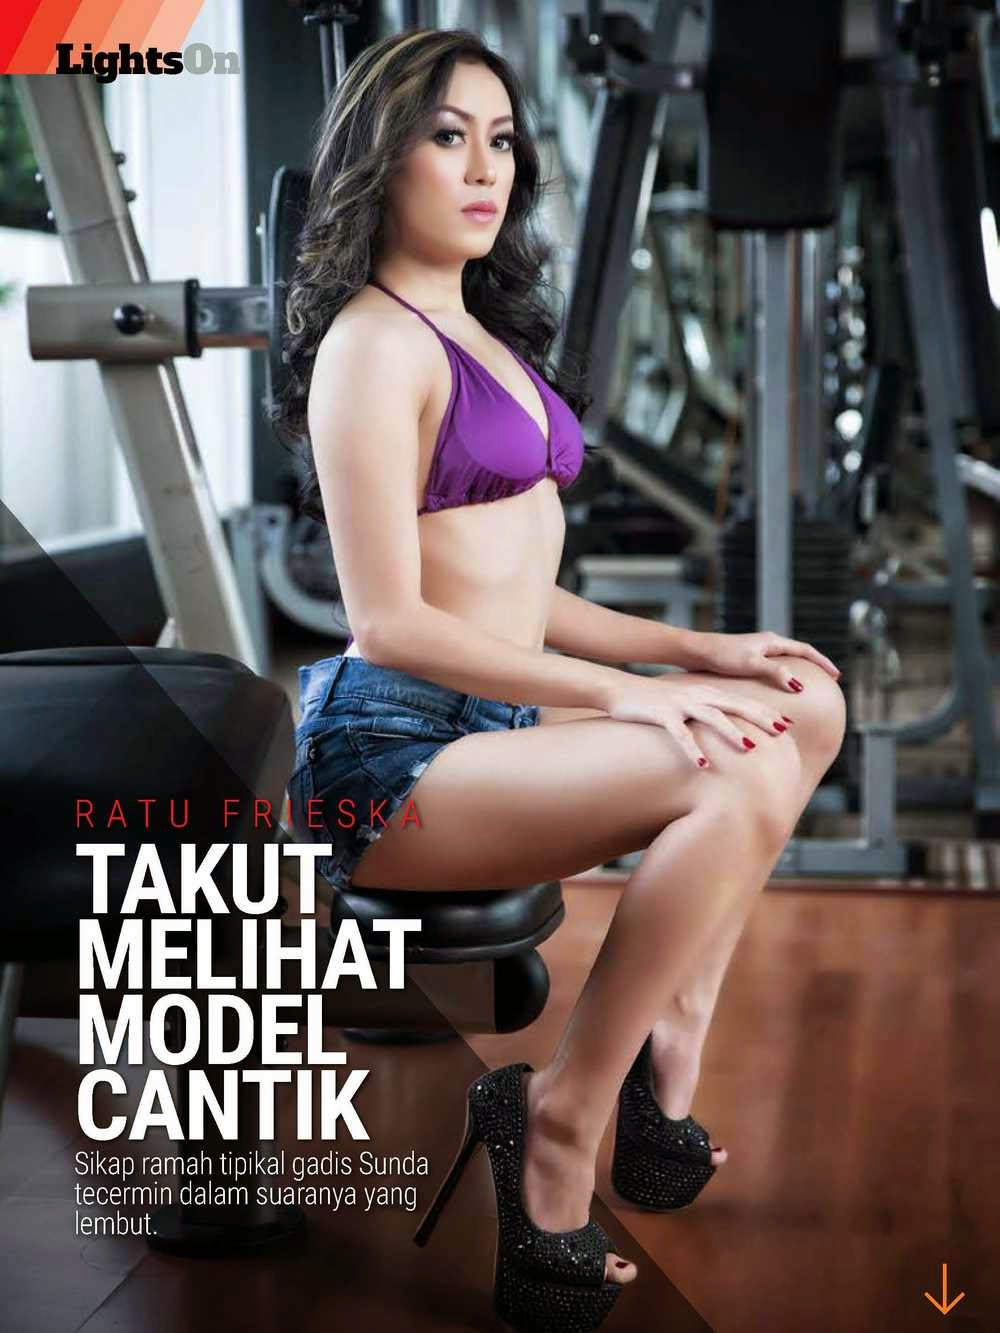 Ratu Frieska LIGHTS ON Edisi 120 FEB 2015